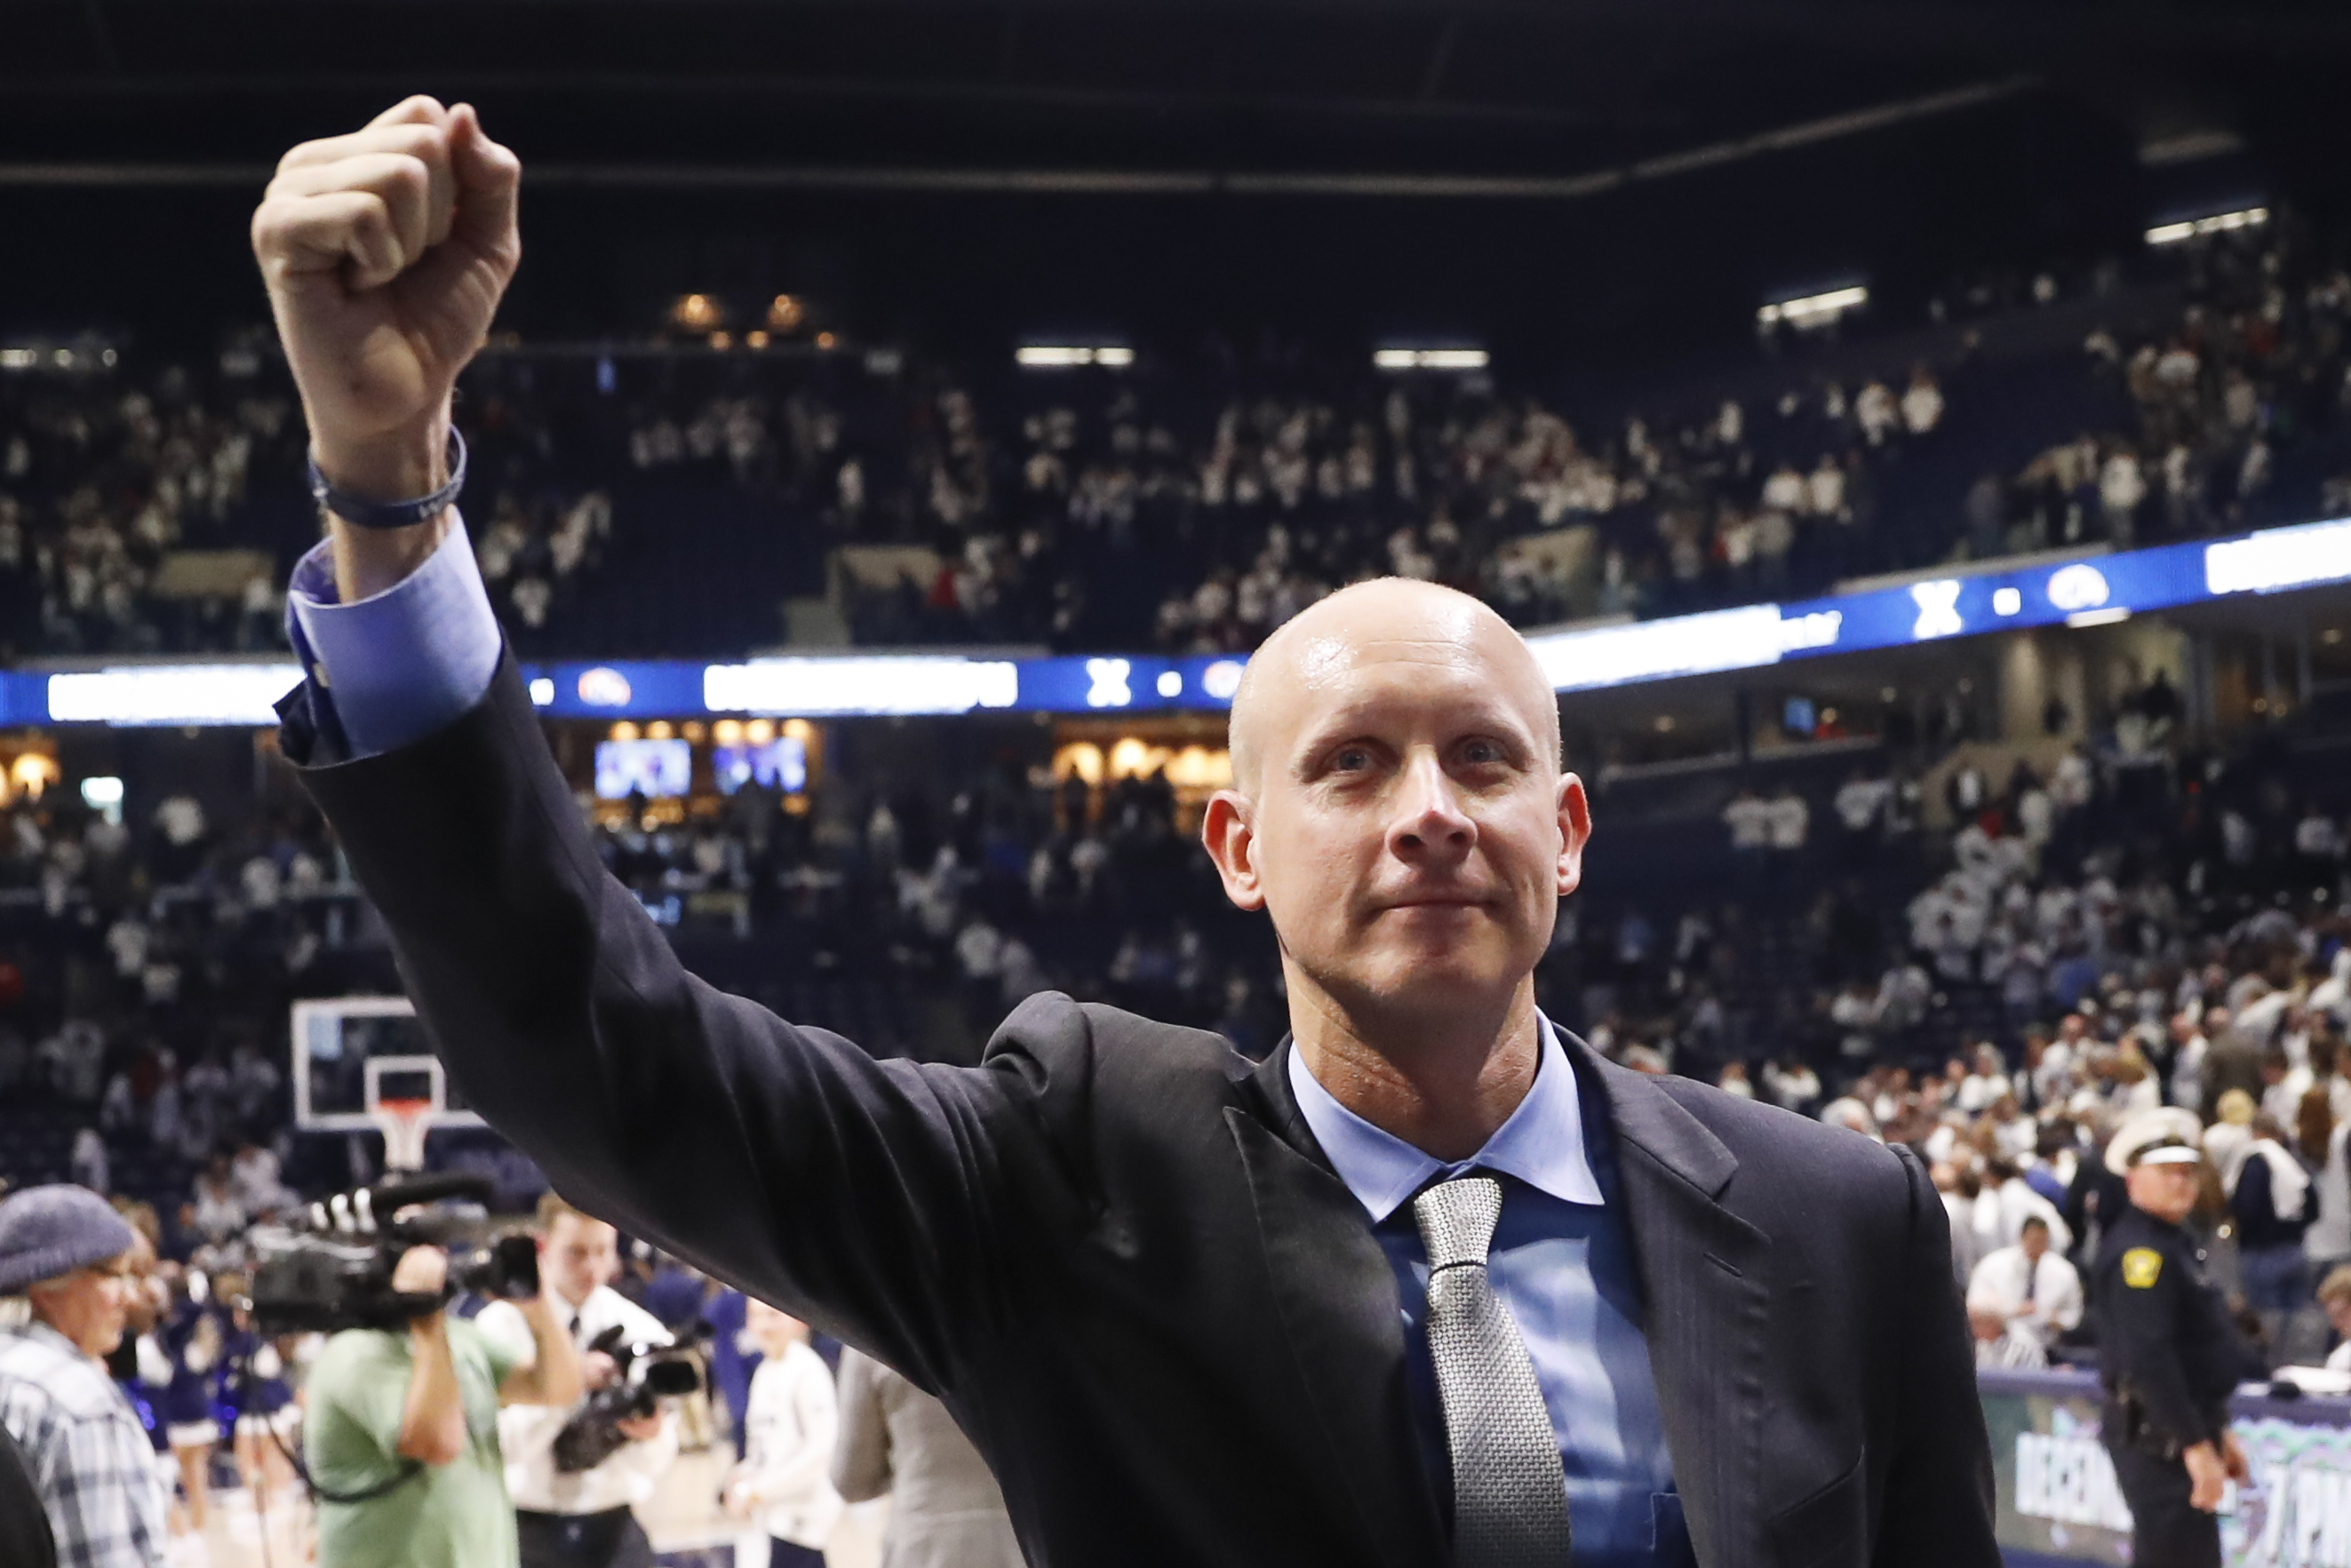 Xavier head coach Chris Mack celebrates after an NCAA college basketball game against Cincinnati, Saturday, Dec. 2, 2017, in Cincinnati. Xavier won 89-76. (AP Photo/John Minchillo)